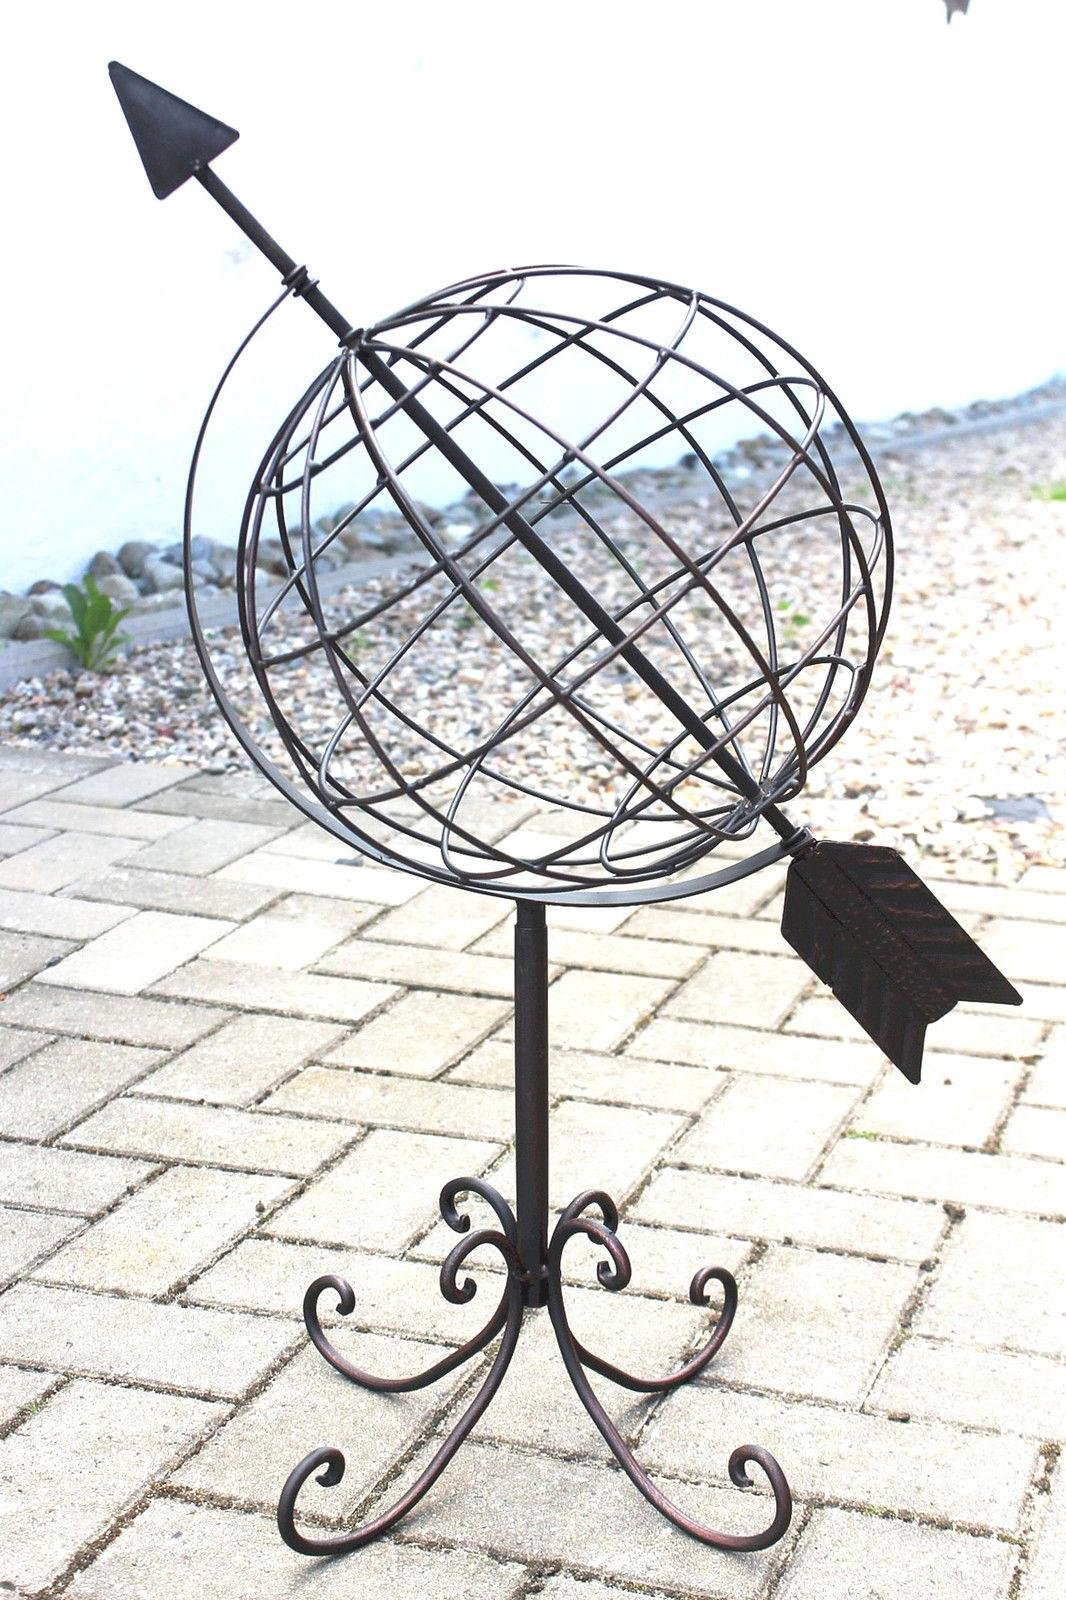 DanDiBo Globe made from metal 101806 Sundial Metal 72 cm Clock Garden decoration